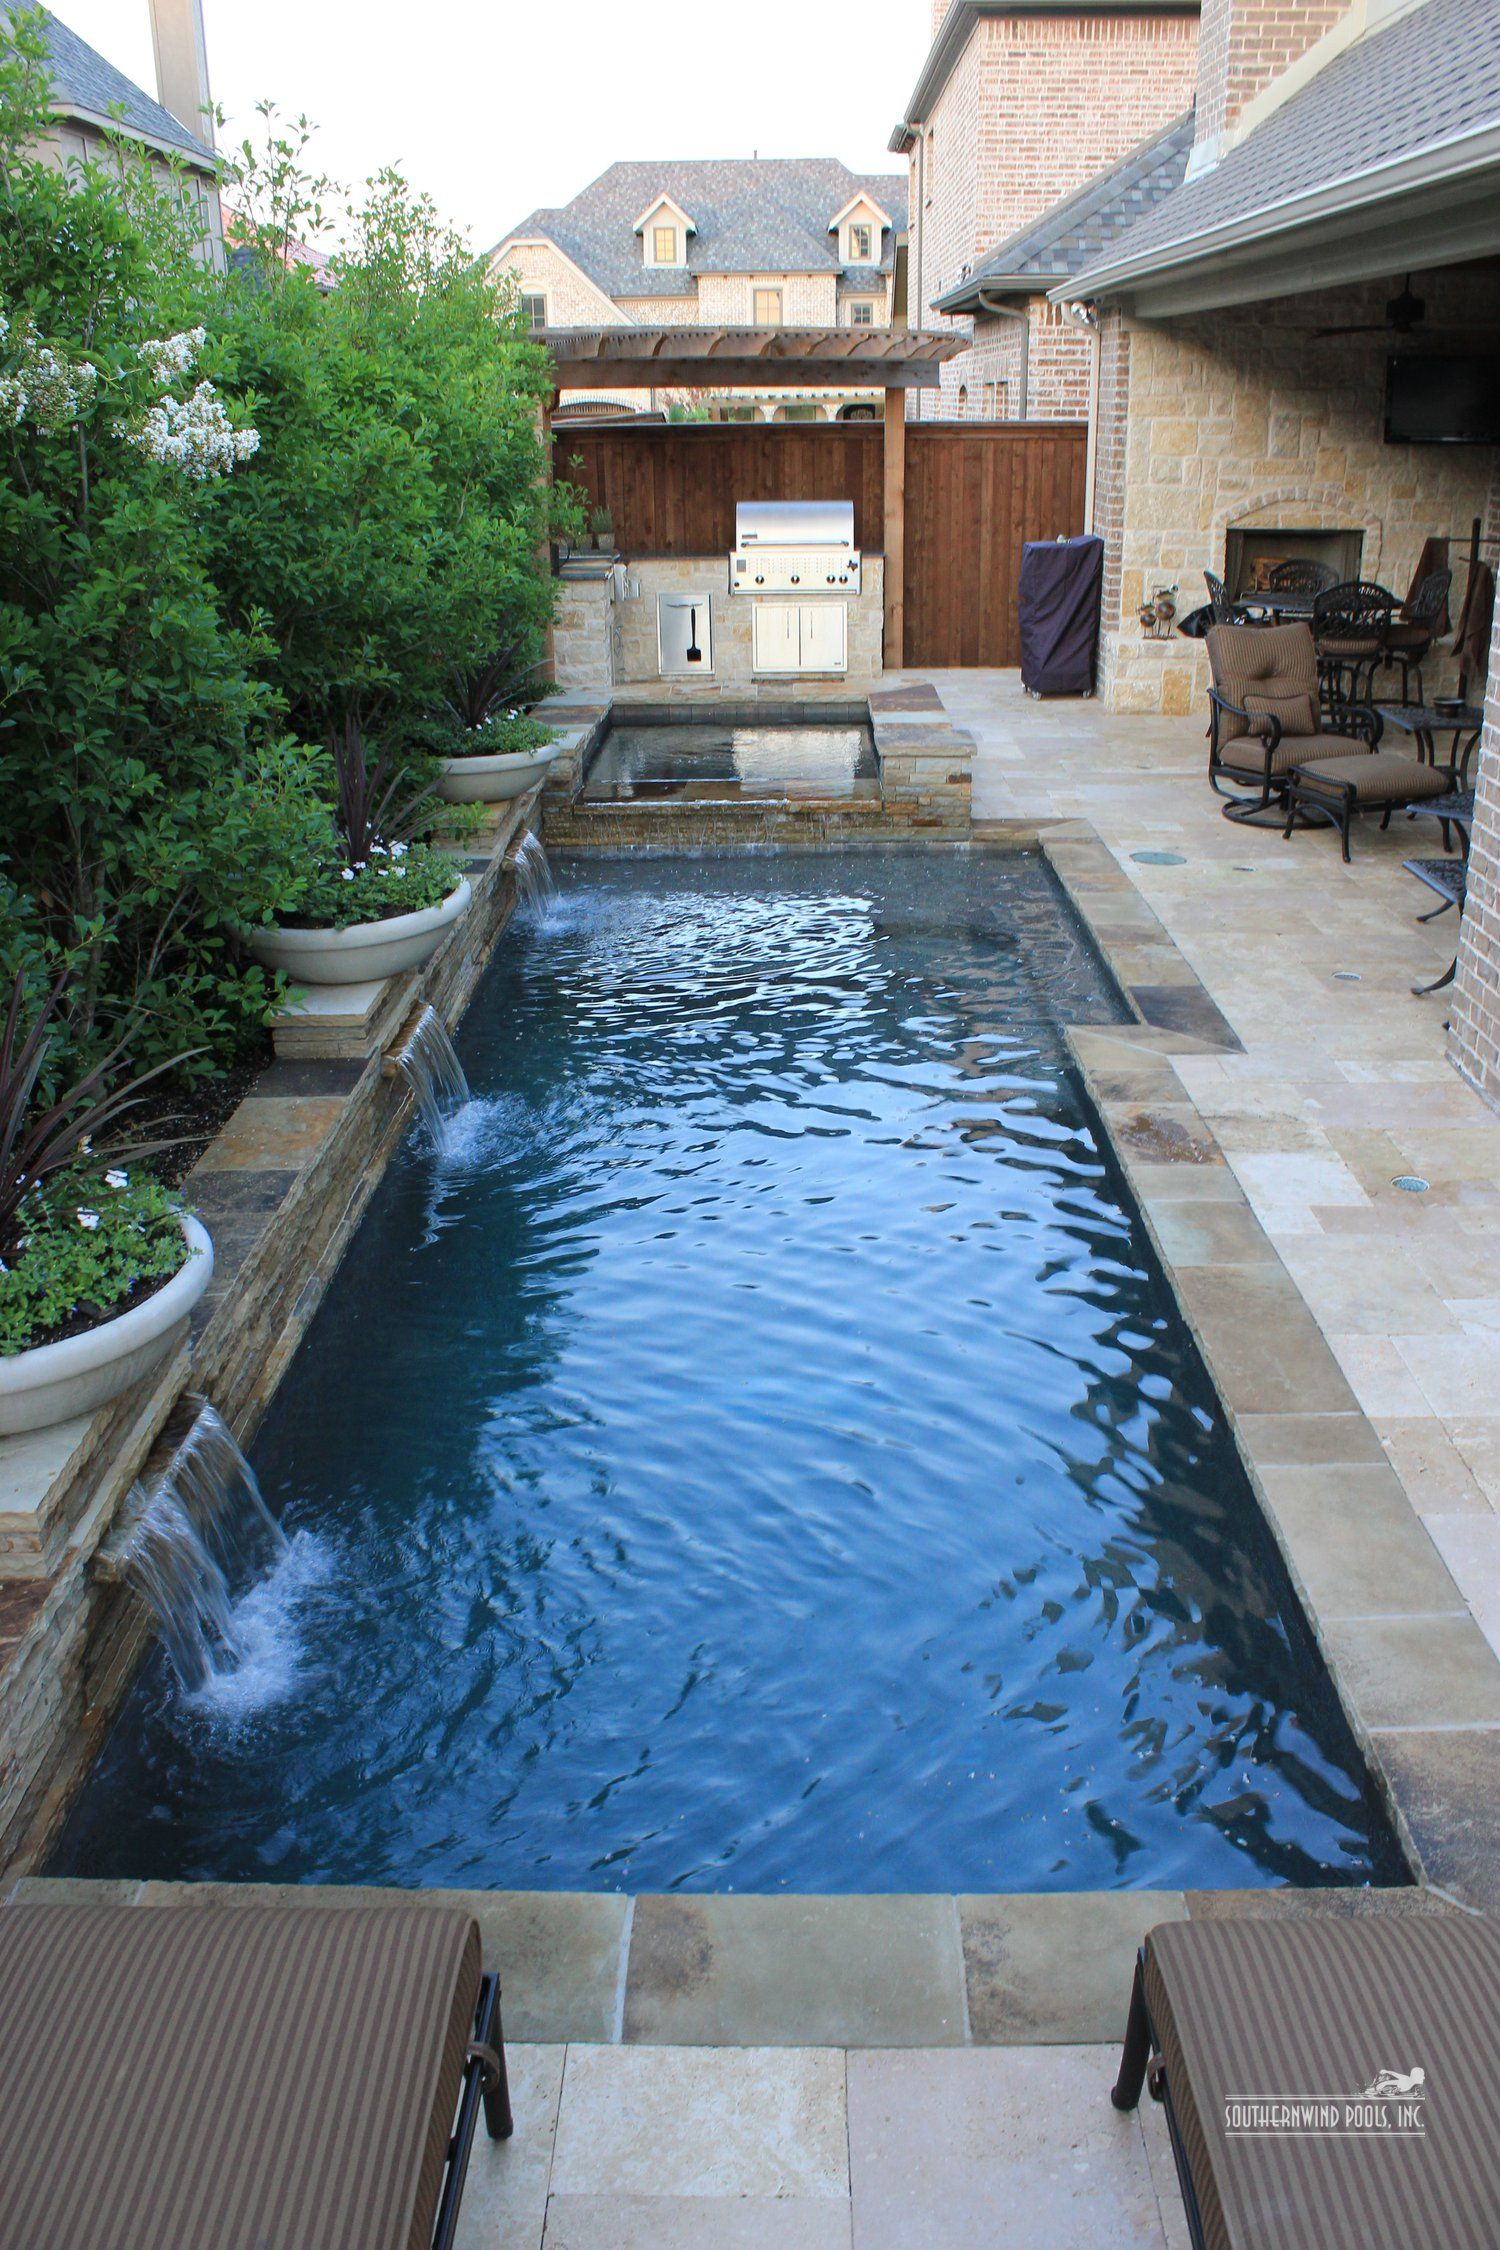 Southernwind pools formal geometric pool 119 parents - Small swimming pools for small backyards ...